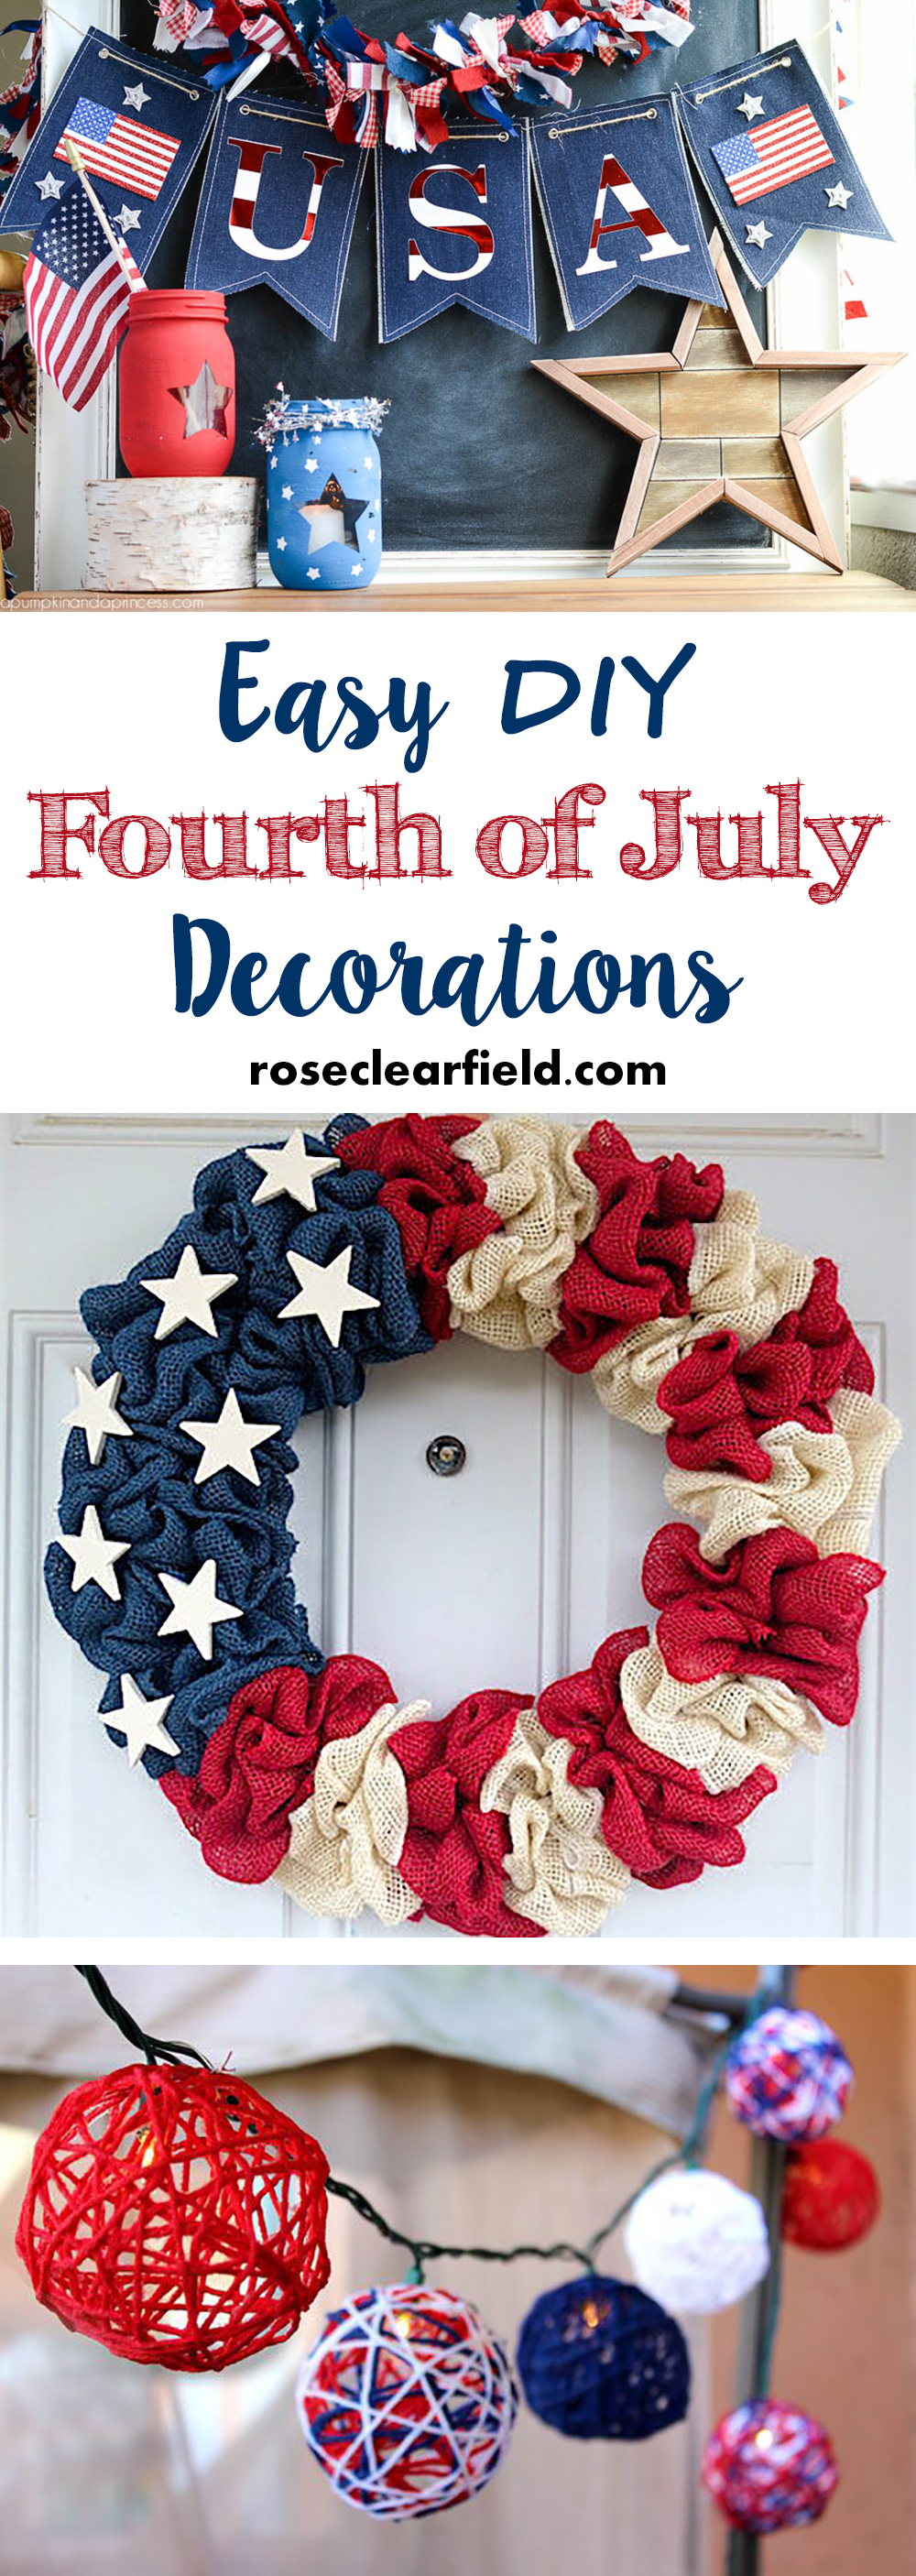 Best Easy Diy Fourth Of July Decorations • Rose Clearfield This Month